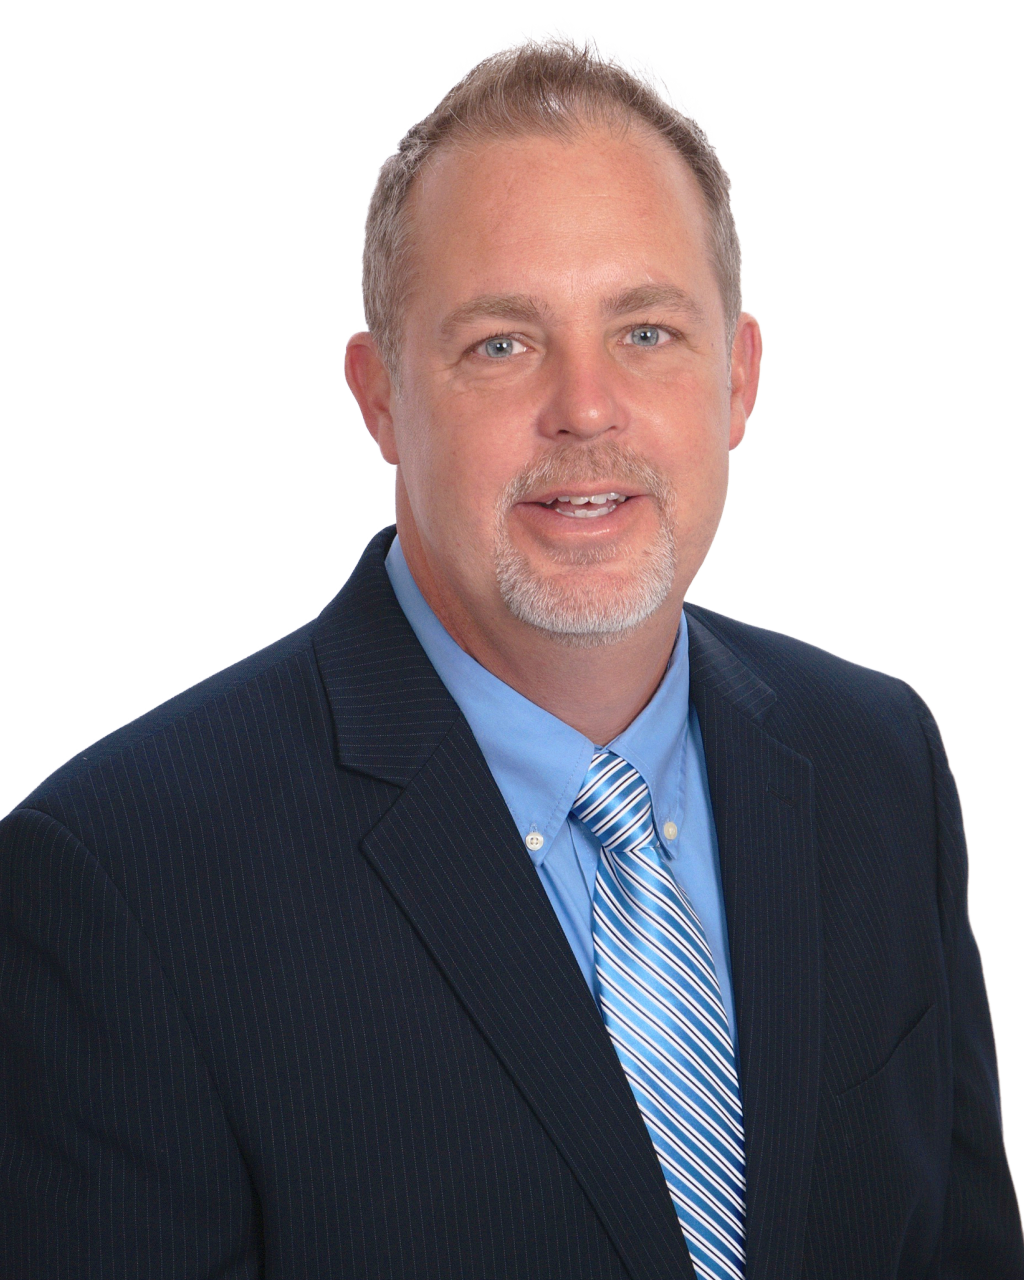 Tad D. Braner RE/MAX Ability Plus - Alee Realty Group